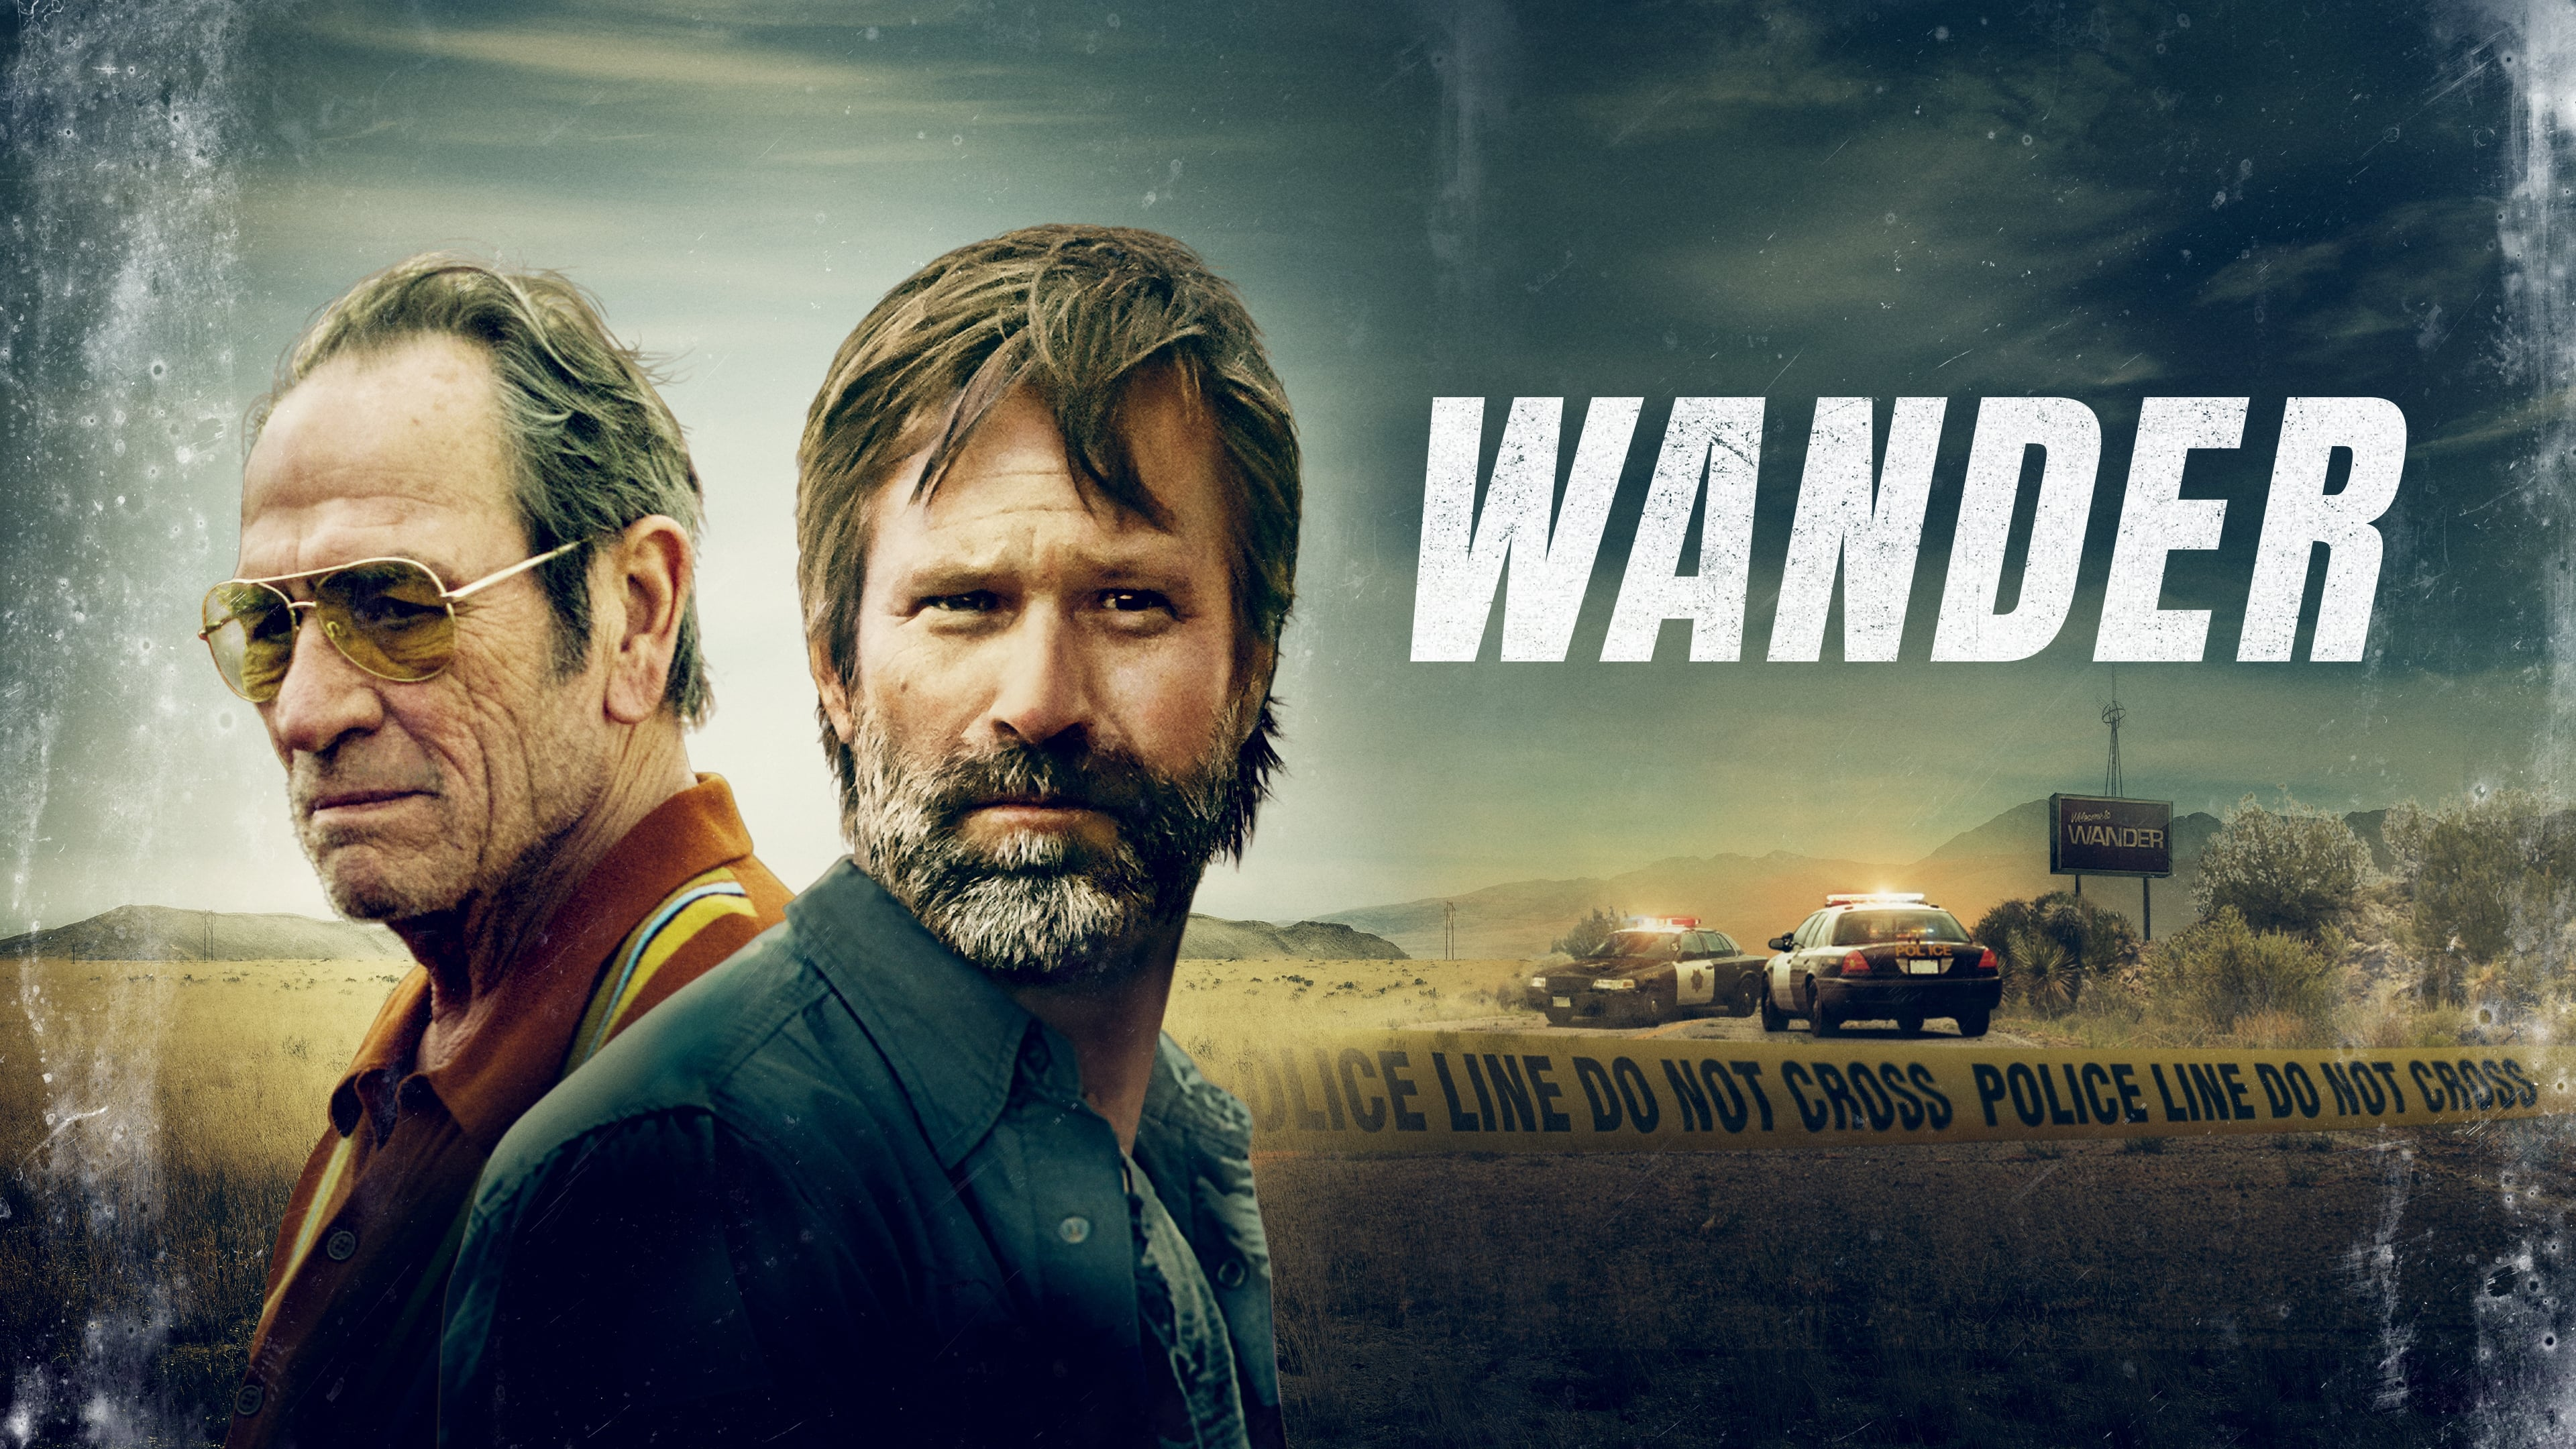 Watch Wander (2020) Full Movie Online Free | Stream Free Movies & TV Shows